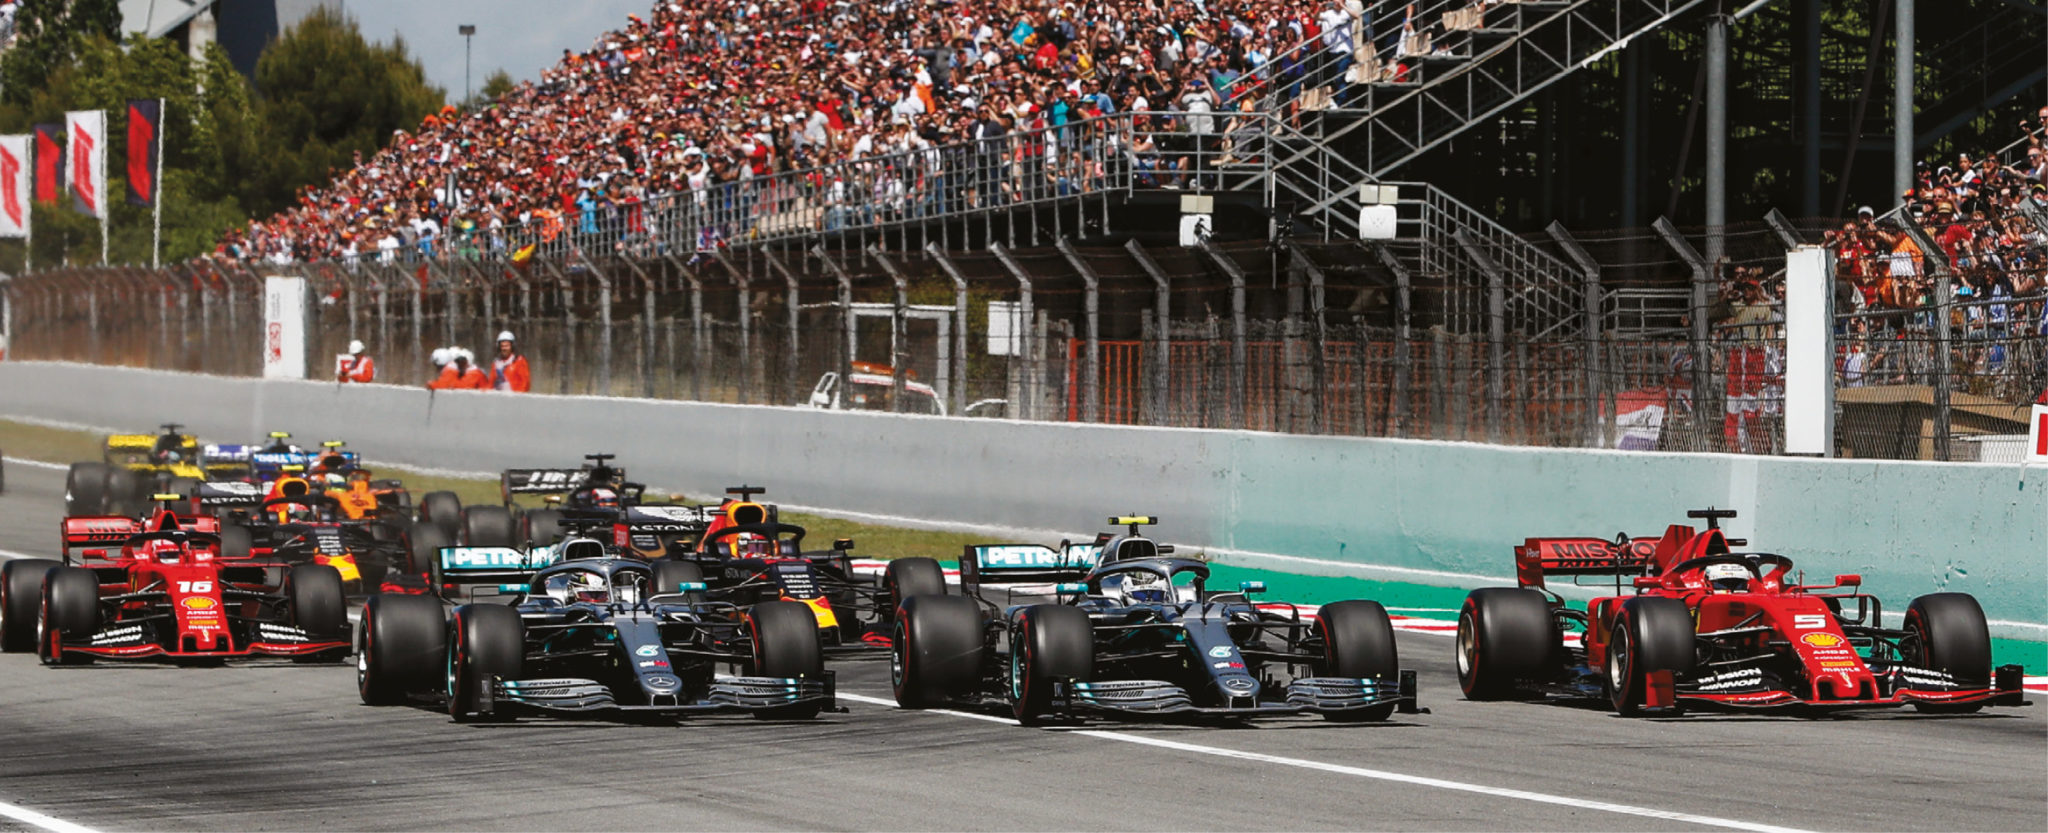 The FIA and Liberty need unity between all teams to solve F1's current issues. But the 'big three' have power to dictate the rules that don't suit their interests